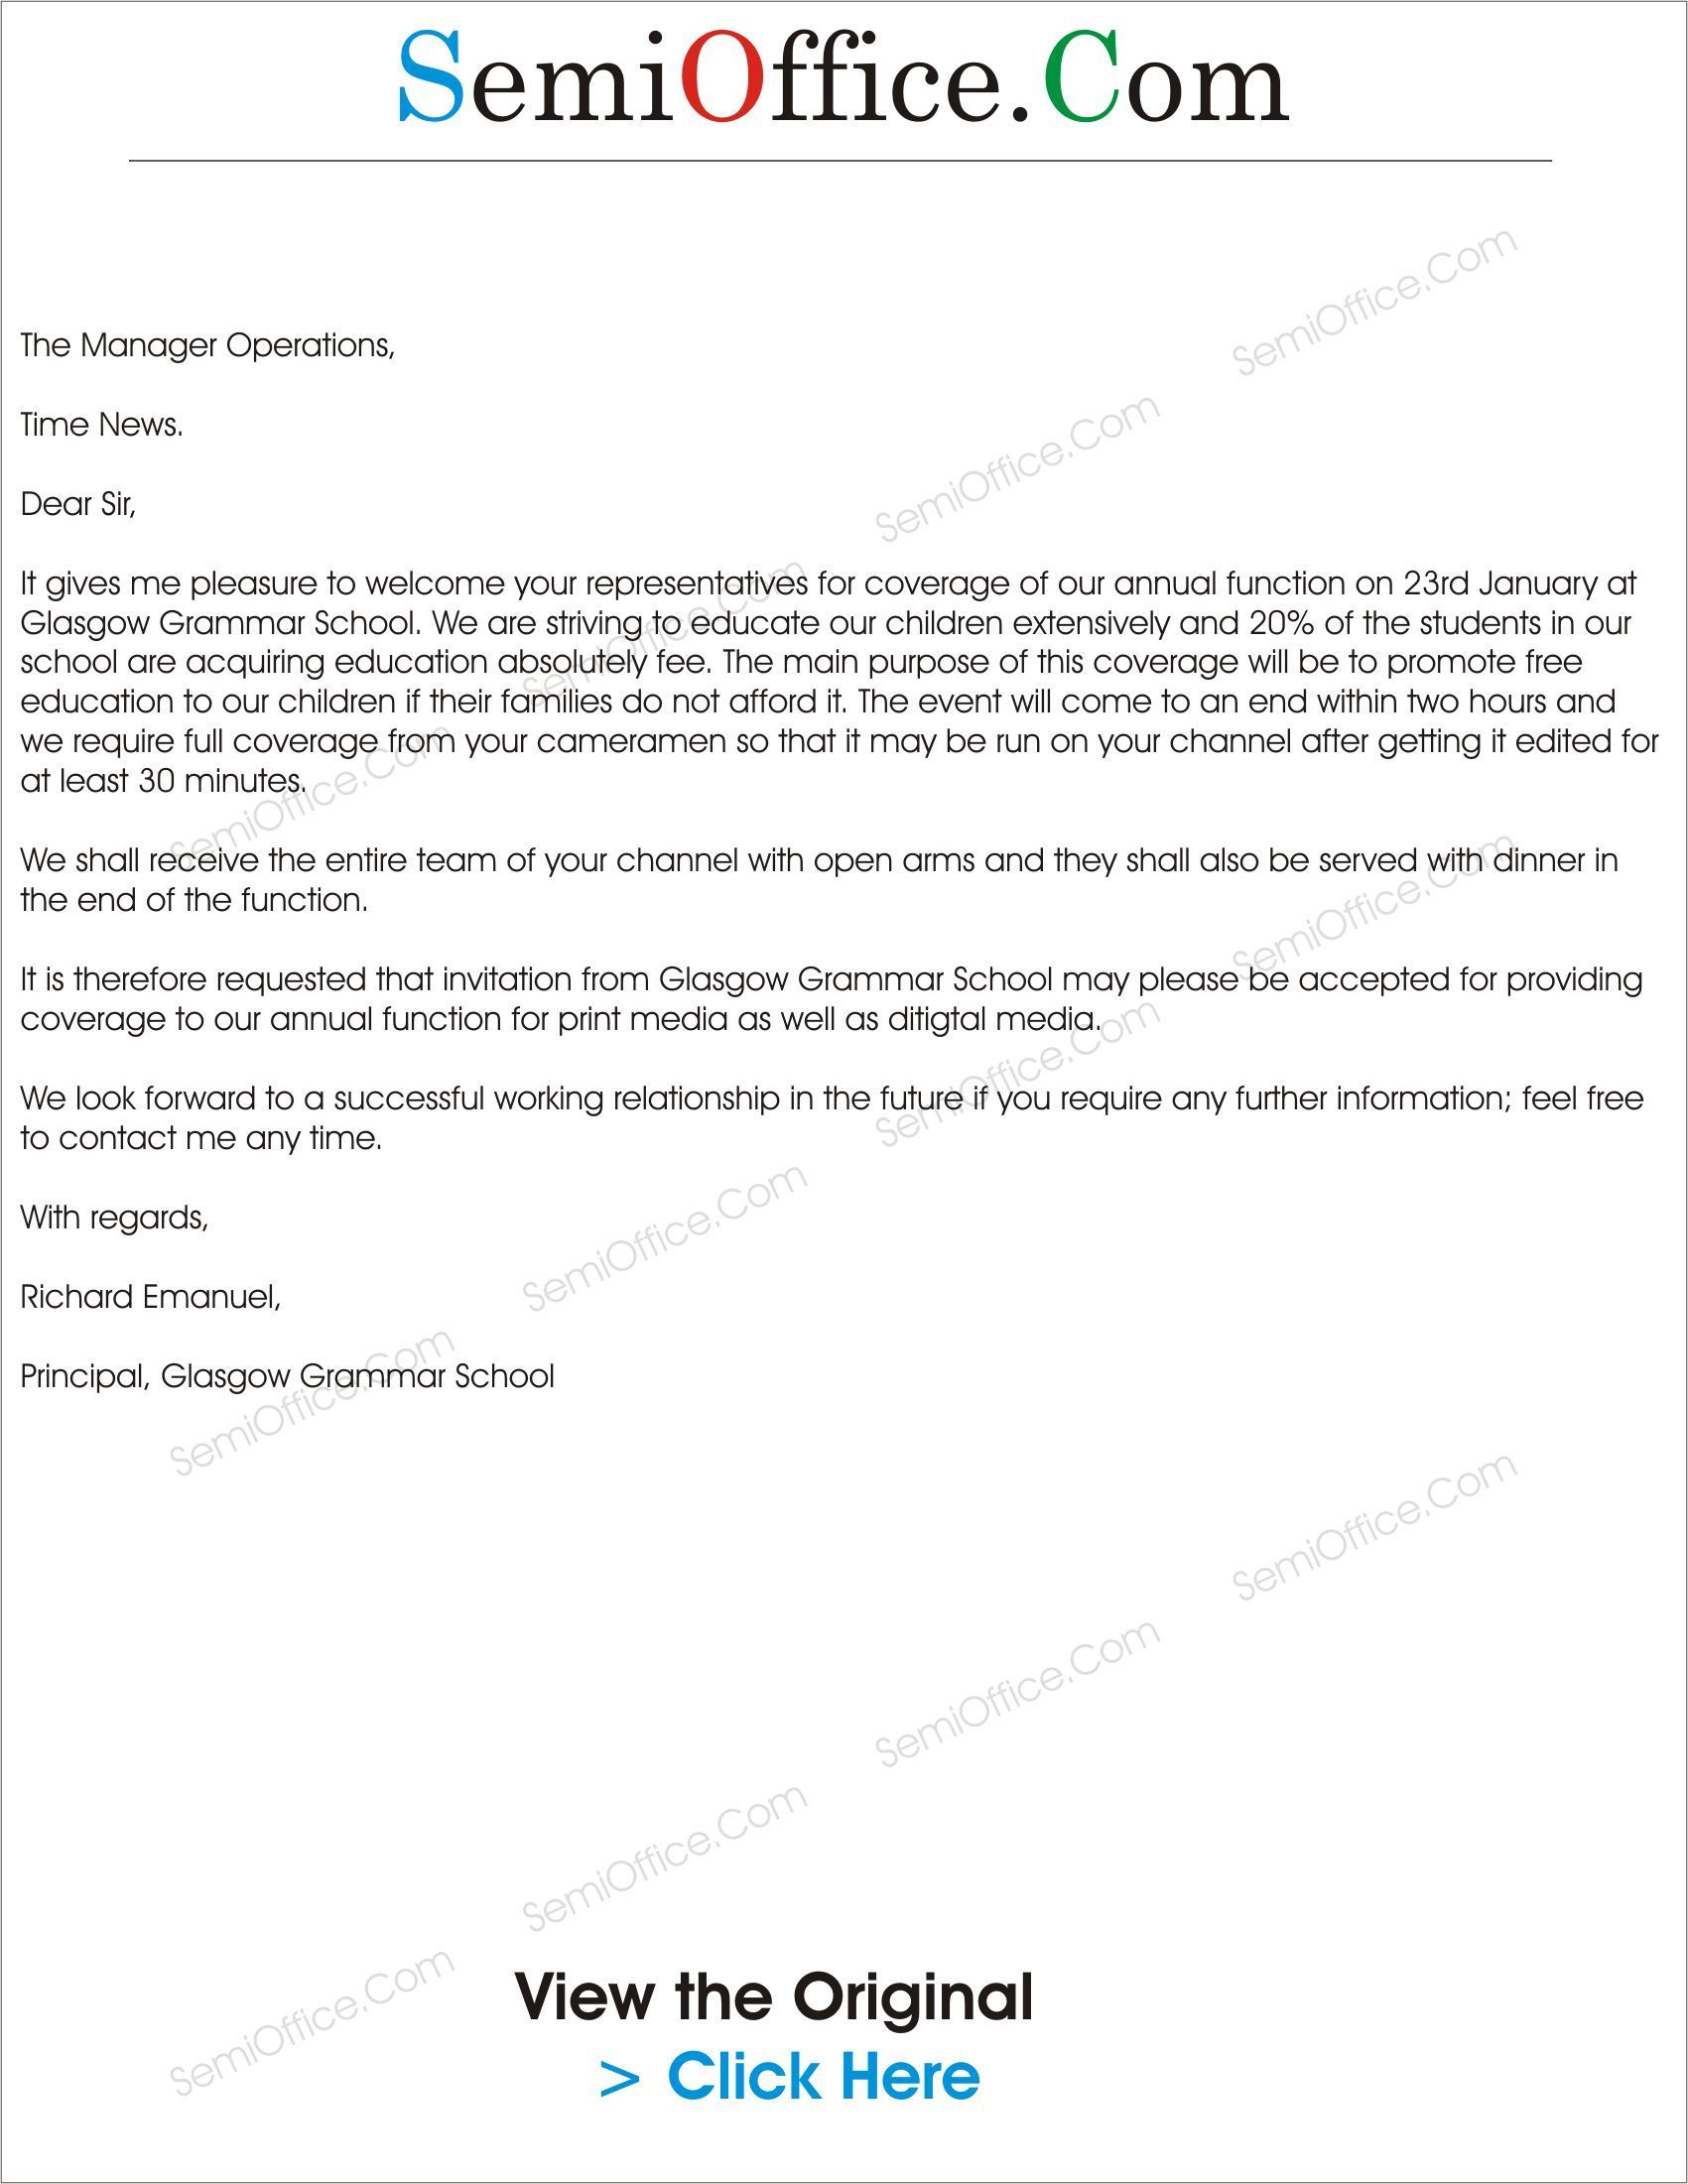 product launch event invitation letter